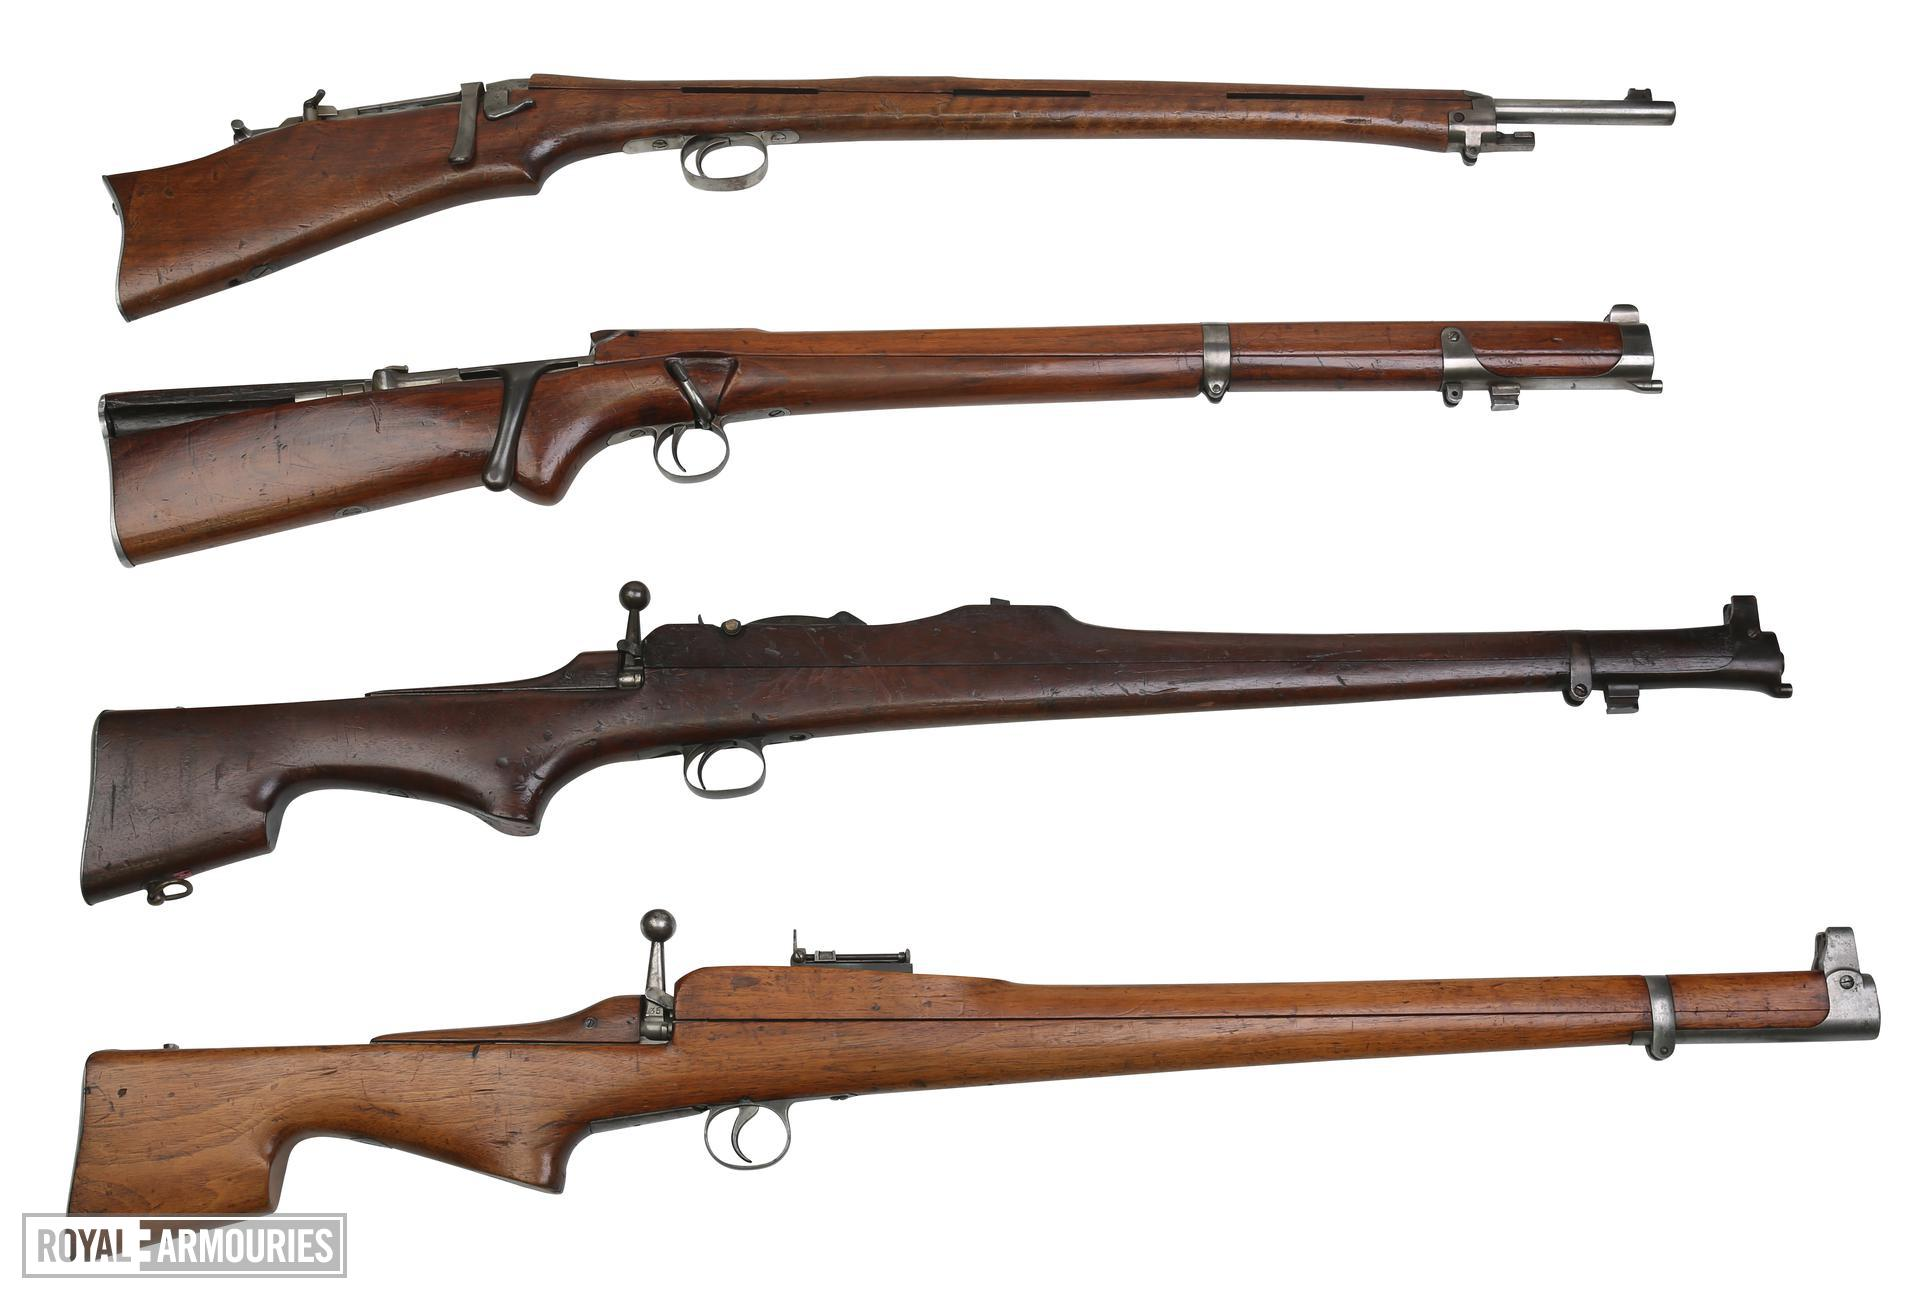 Comparison shot of 4 Thorneycroft Models. First Pattern 1902 PR.5827. Second Pattern 1902 PR.5826. Model 1906 Experimental PR.10280. Third Pattern Model 1907 PR.5835.